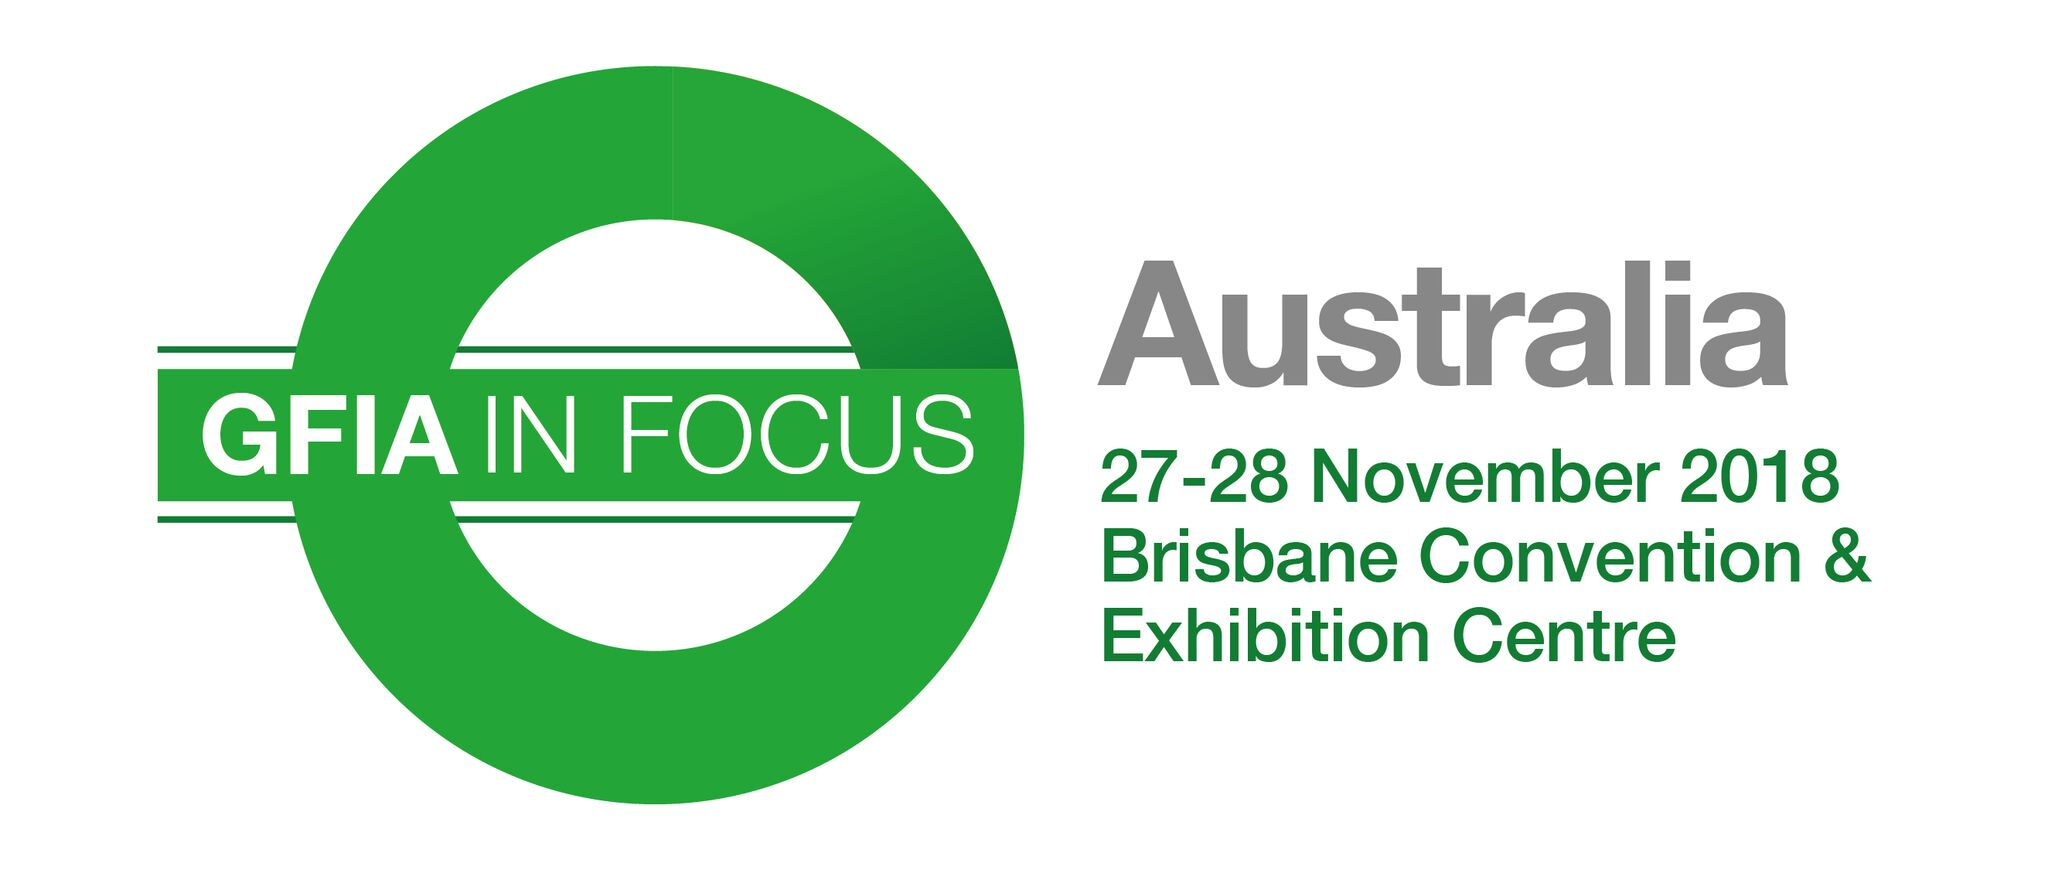 GFIA in Focus Australia (Global Forum for Innovations in Agriculture)